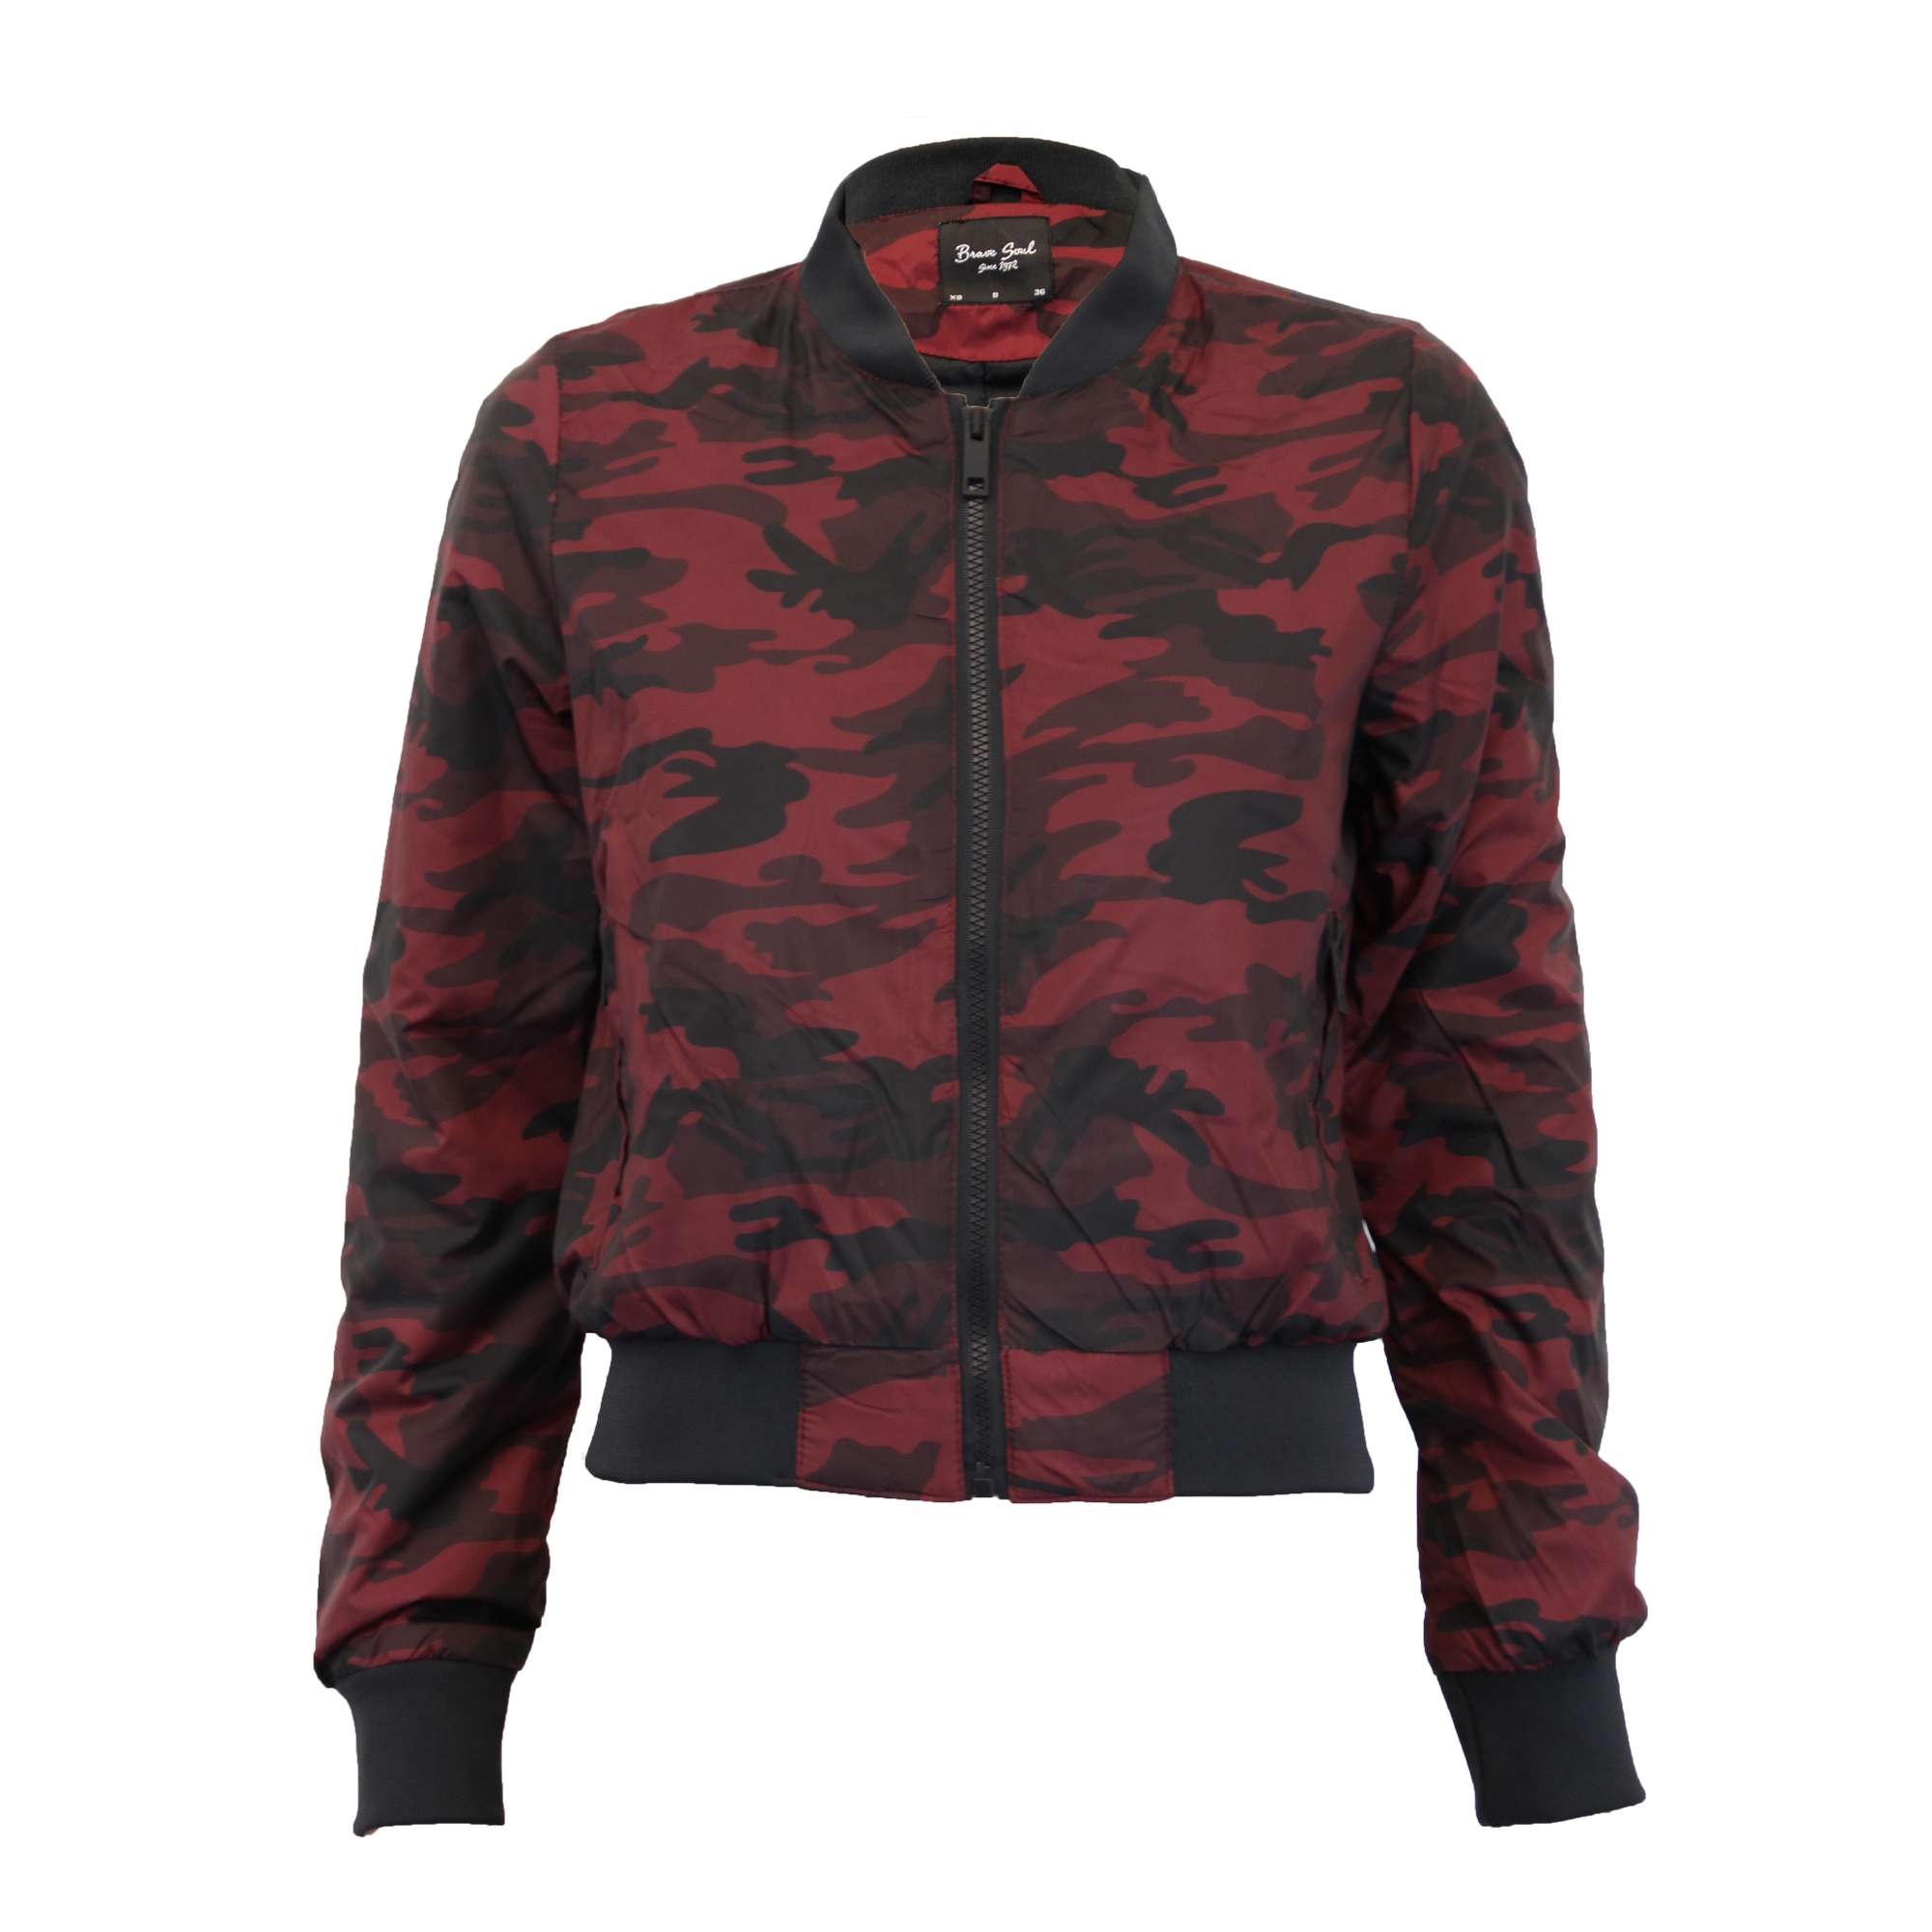 ladies camo jackets brave soul womens coat military ma1 padded harrington bomber ebay. Black Bedroom Furniture Sets. Home Design Ideas